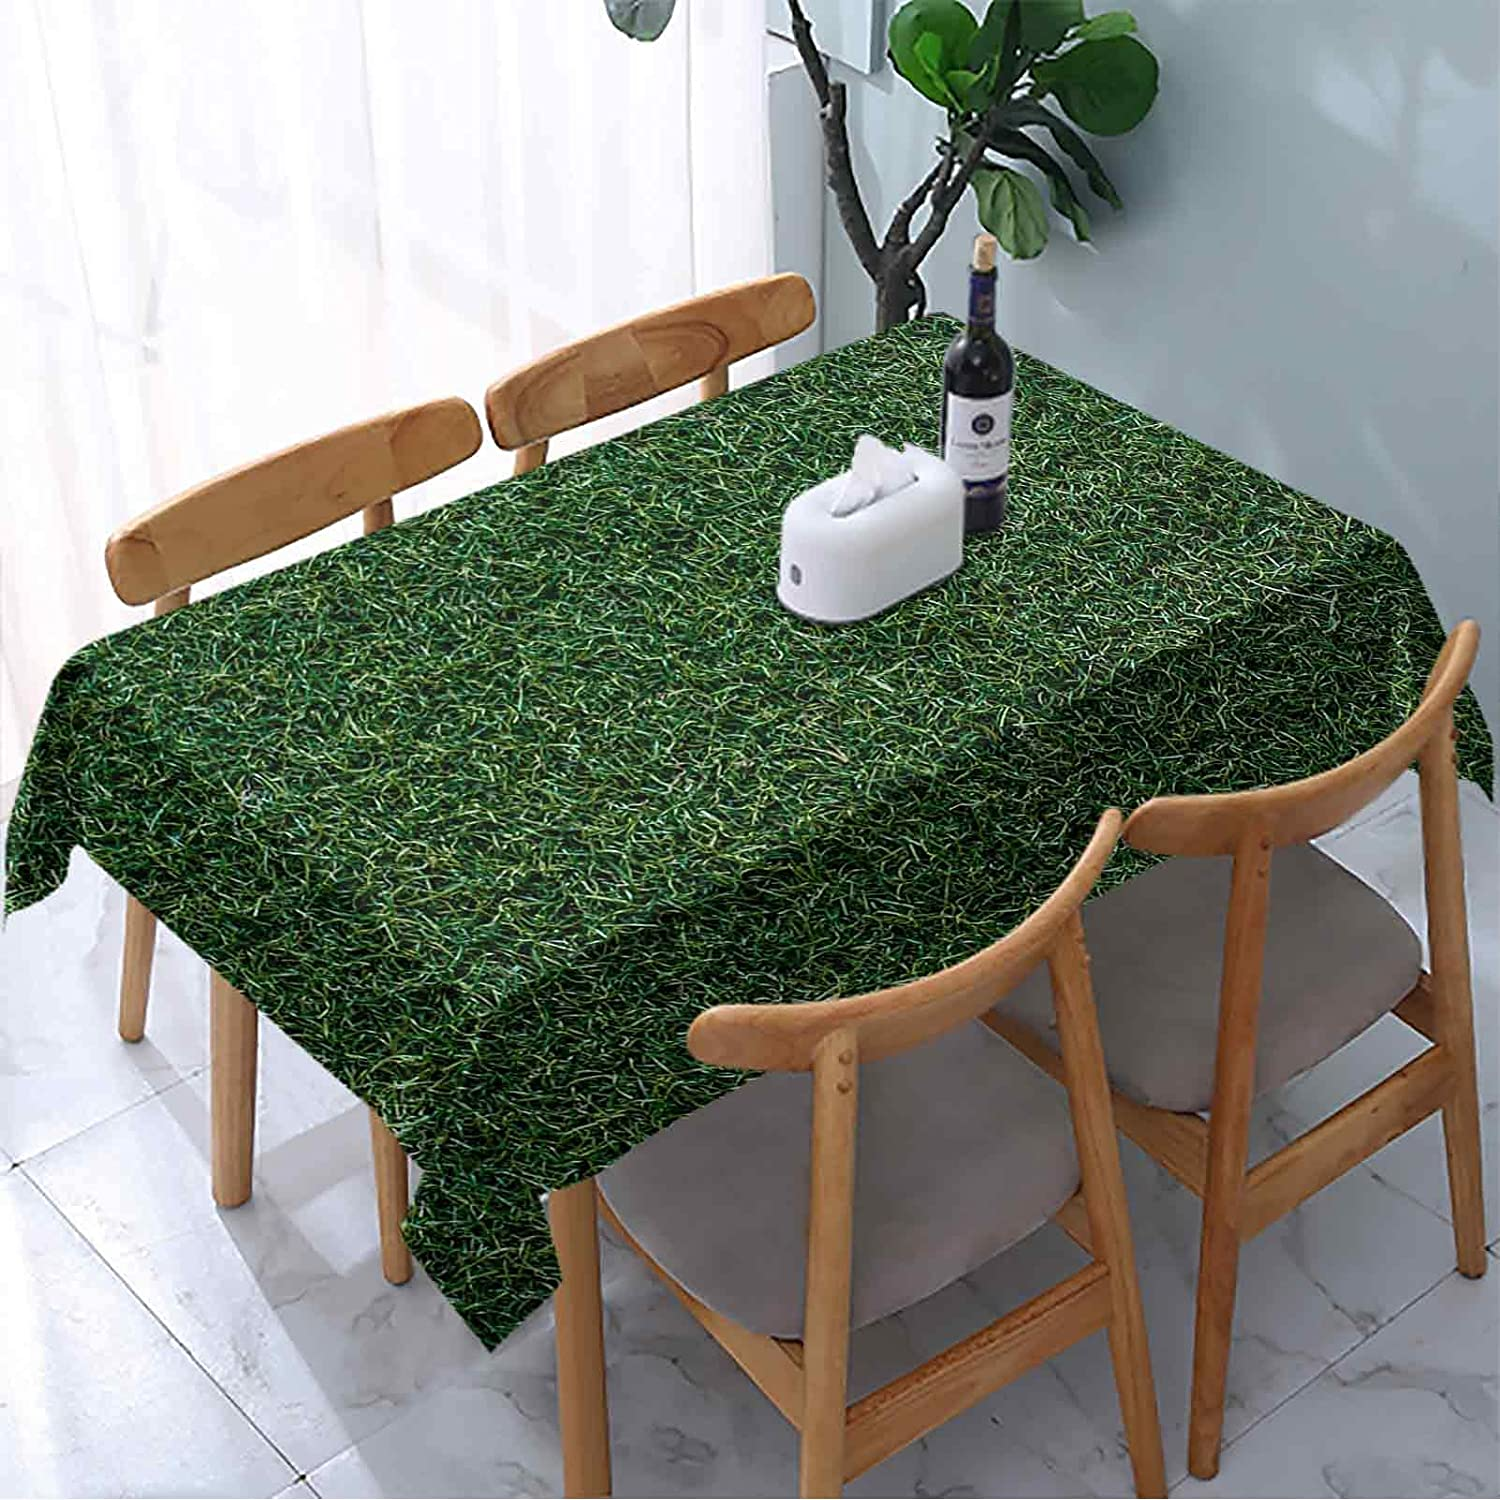 Textura sold out Table Cover Green Grass lowest price Background Texture and Illustra